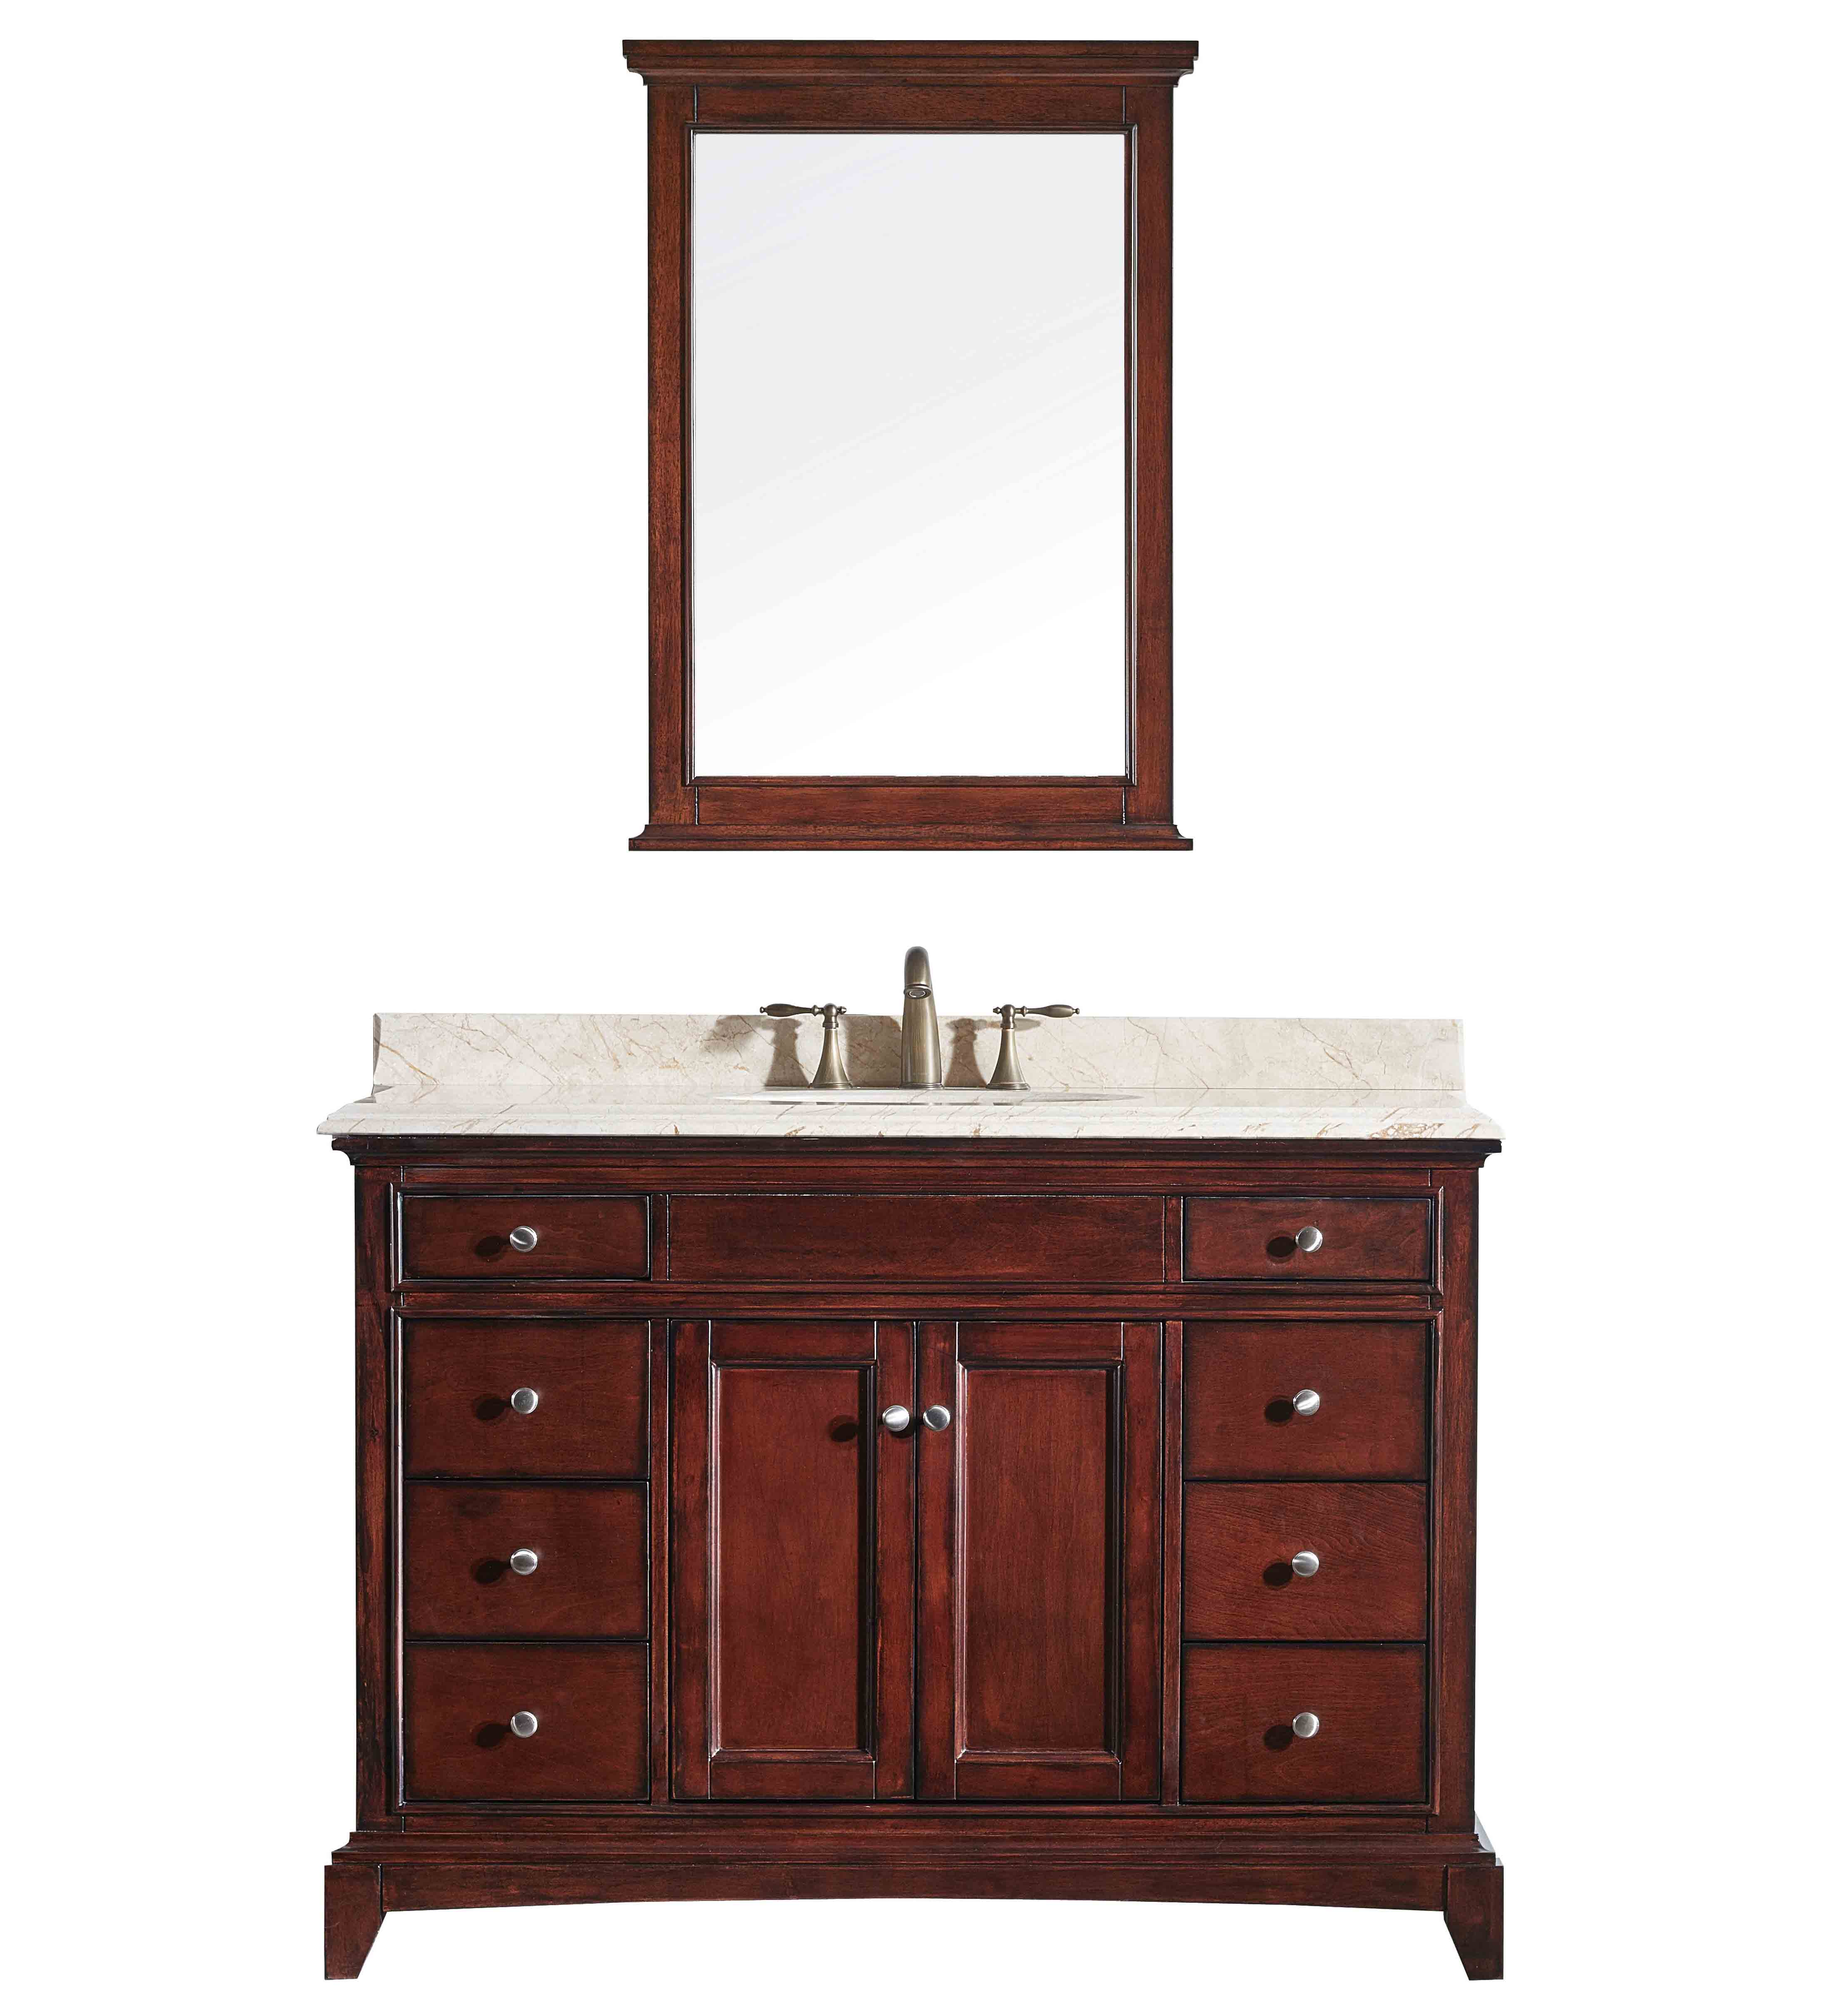 """EVVN709 48TK CABINETONLY NOTOP A Main - Eviva Elite Stamford 48"""" Brown Solid Wood Bathroom Cabinet Only Without Top"""